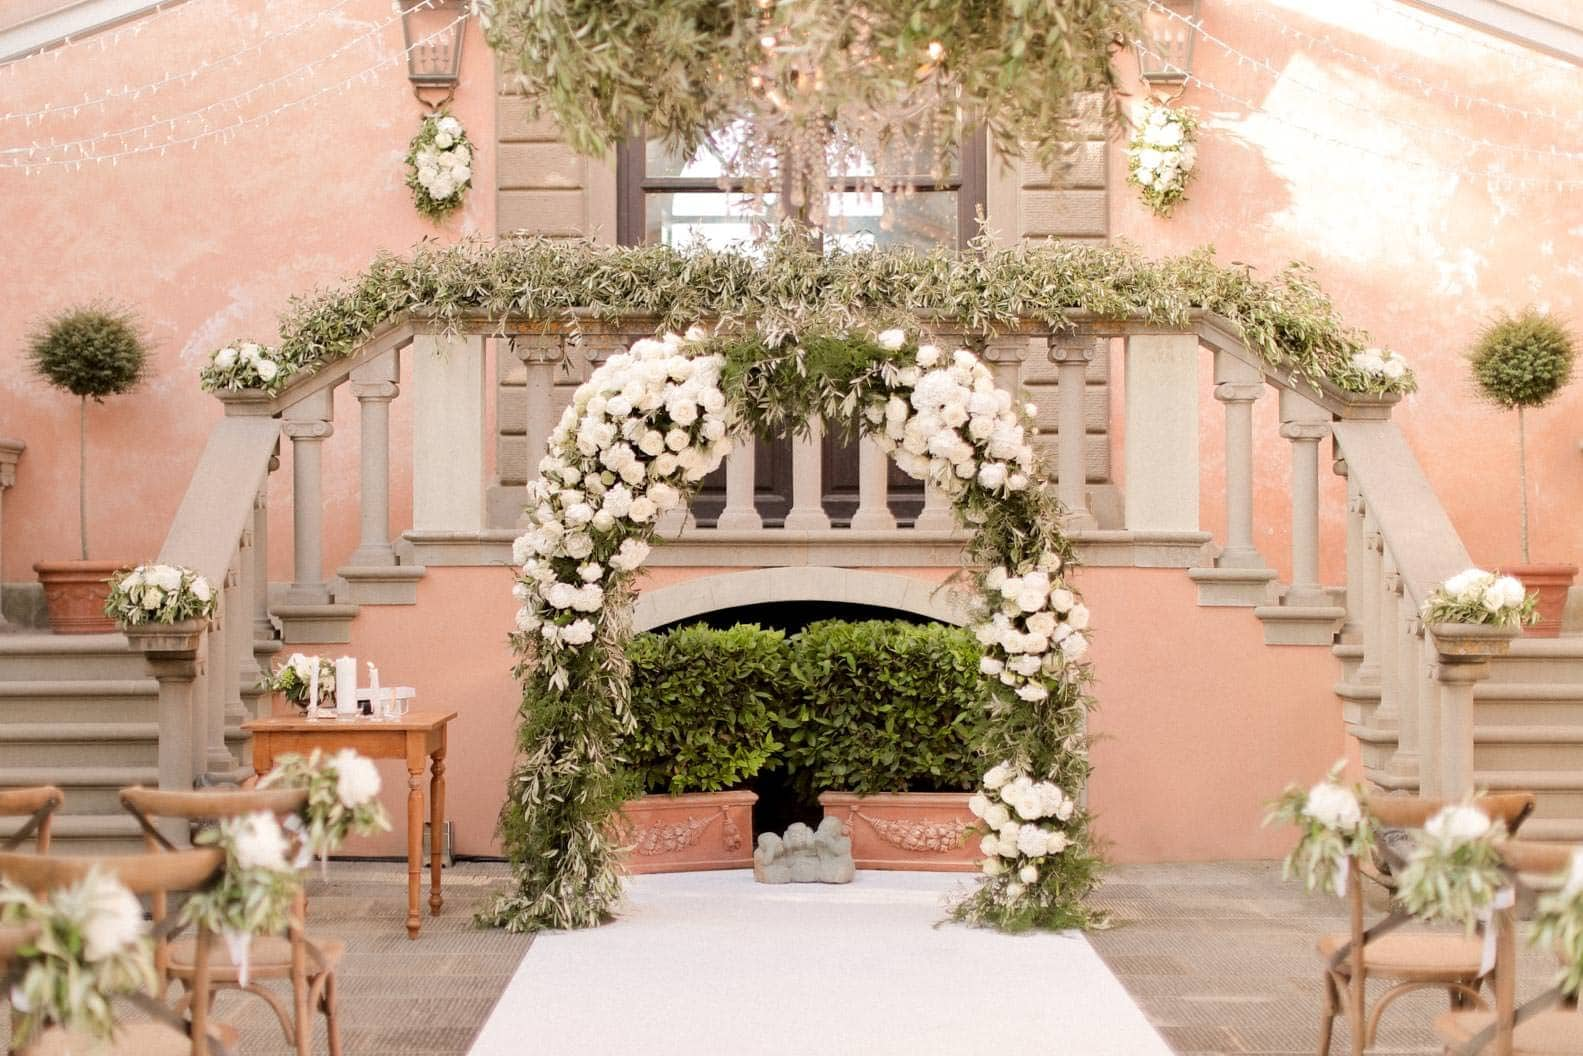 the flower arch and the decoration used for the ceremony setting